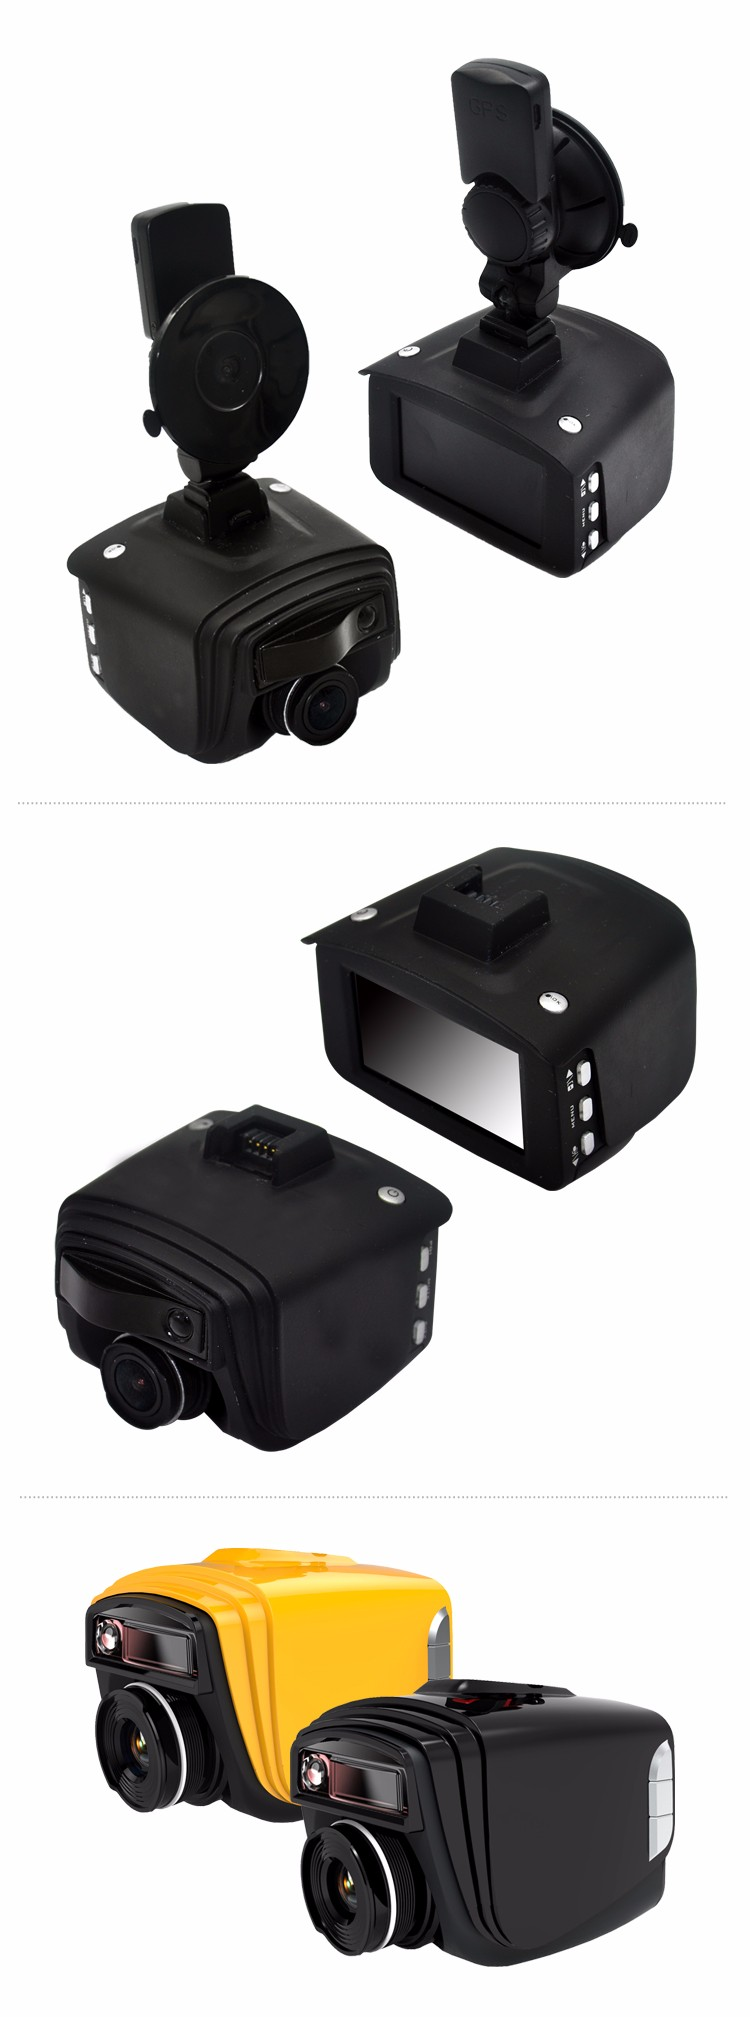 car dvr user manual fhd 1080p car dash camera dvr video recorder ambarella a7 car dvr radar detector